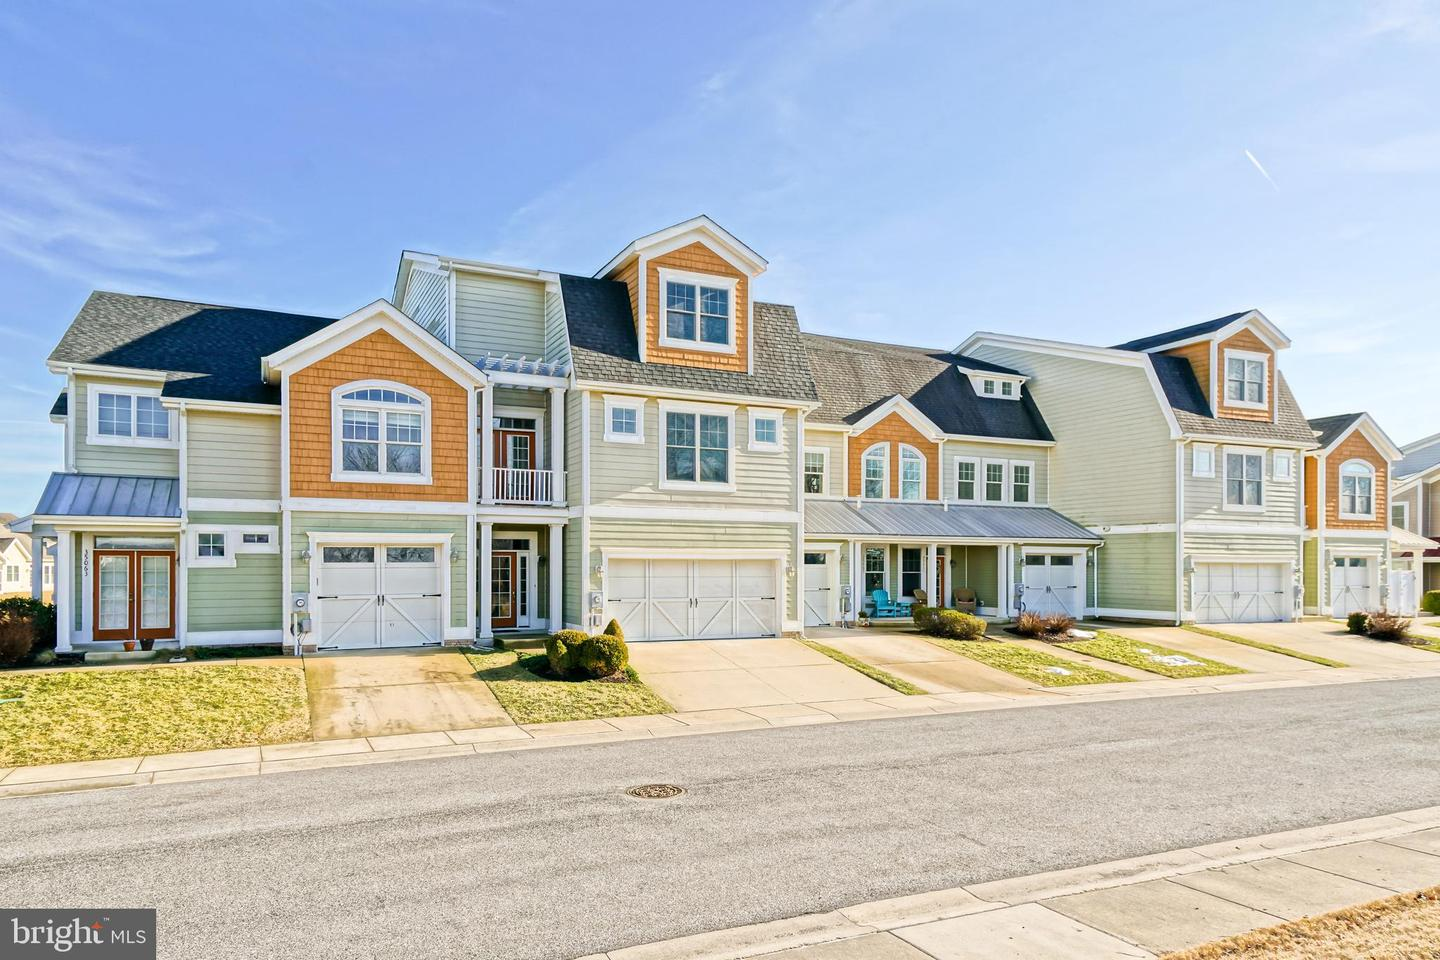 DESU131502-301403846483-2019-09-28-15-33-06 35065 Zwaanendael Ave | Lewes, DE Real Estate For Sale | MLS# Desu131502  - Lee Ann Group